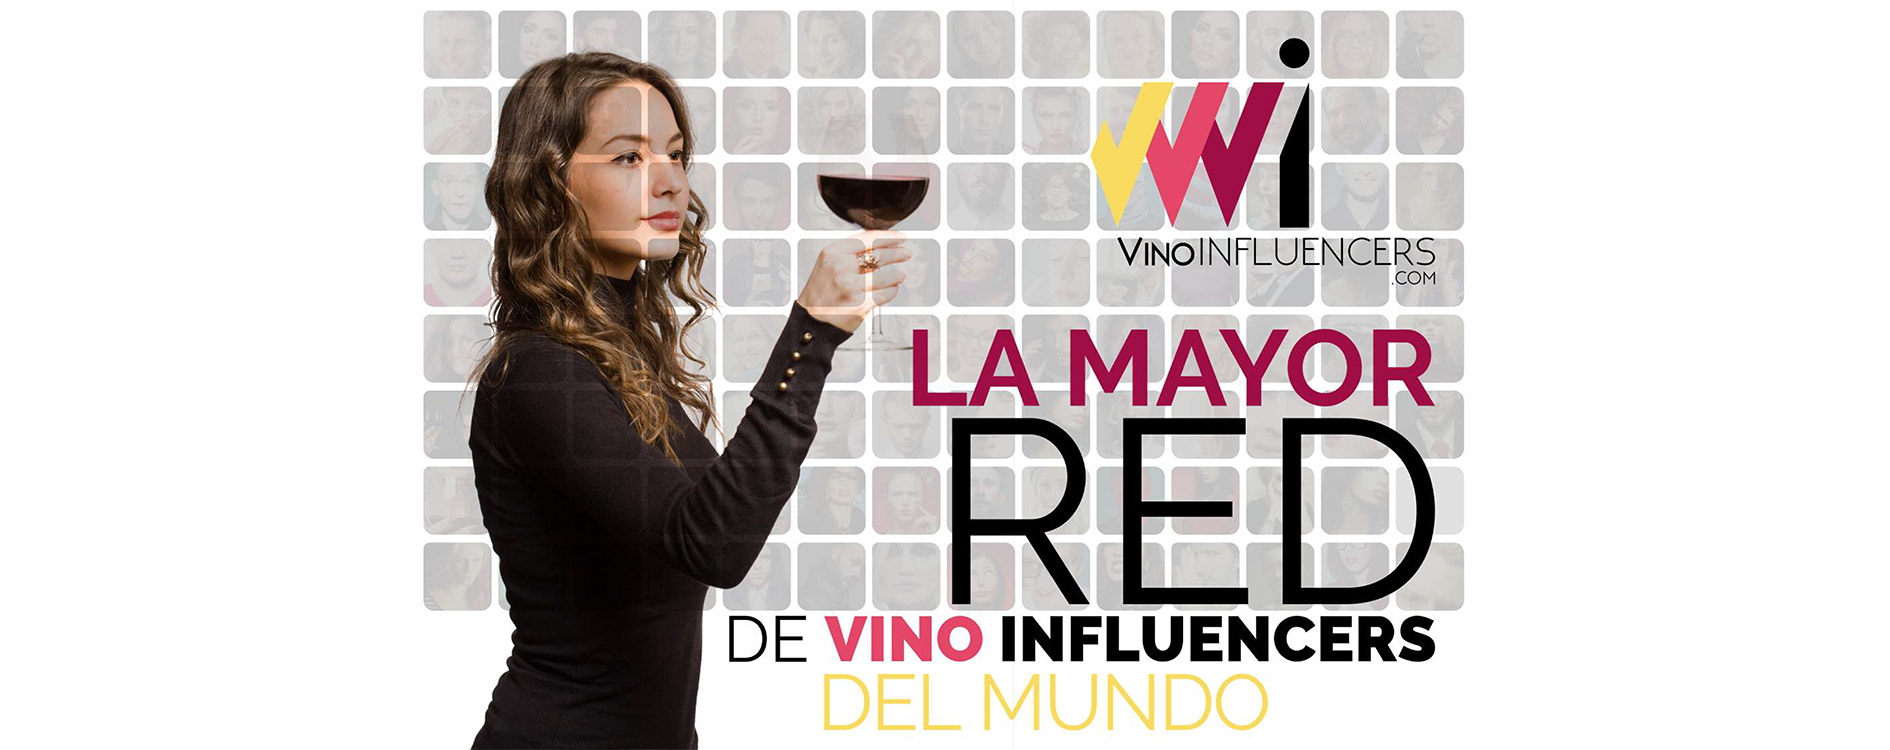 VinoInfluencers - La mayor red mundial de influencers del vino